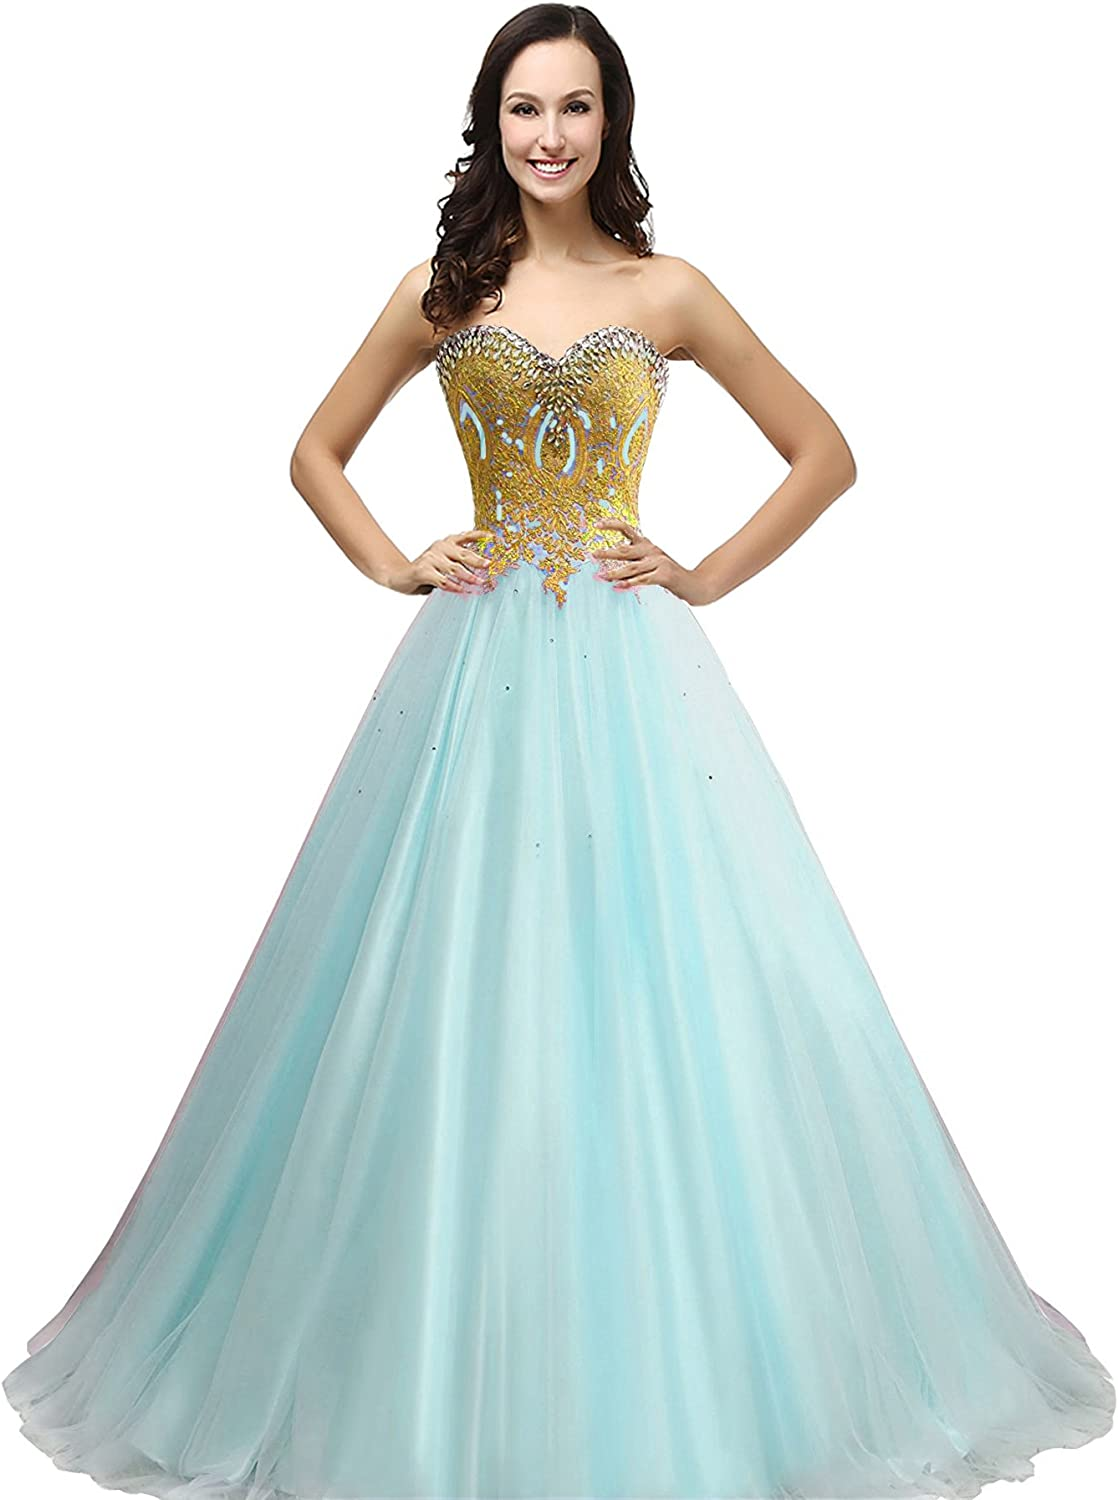 Lemai Tulle gold Lace Crystals Ball Gown Long Corset Prom Wedding Dresses